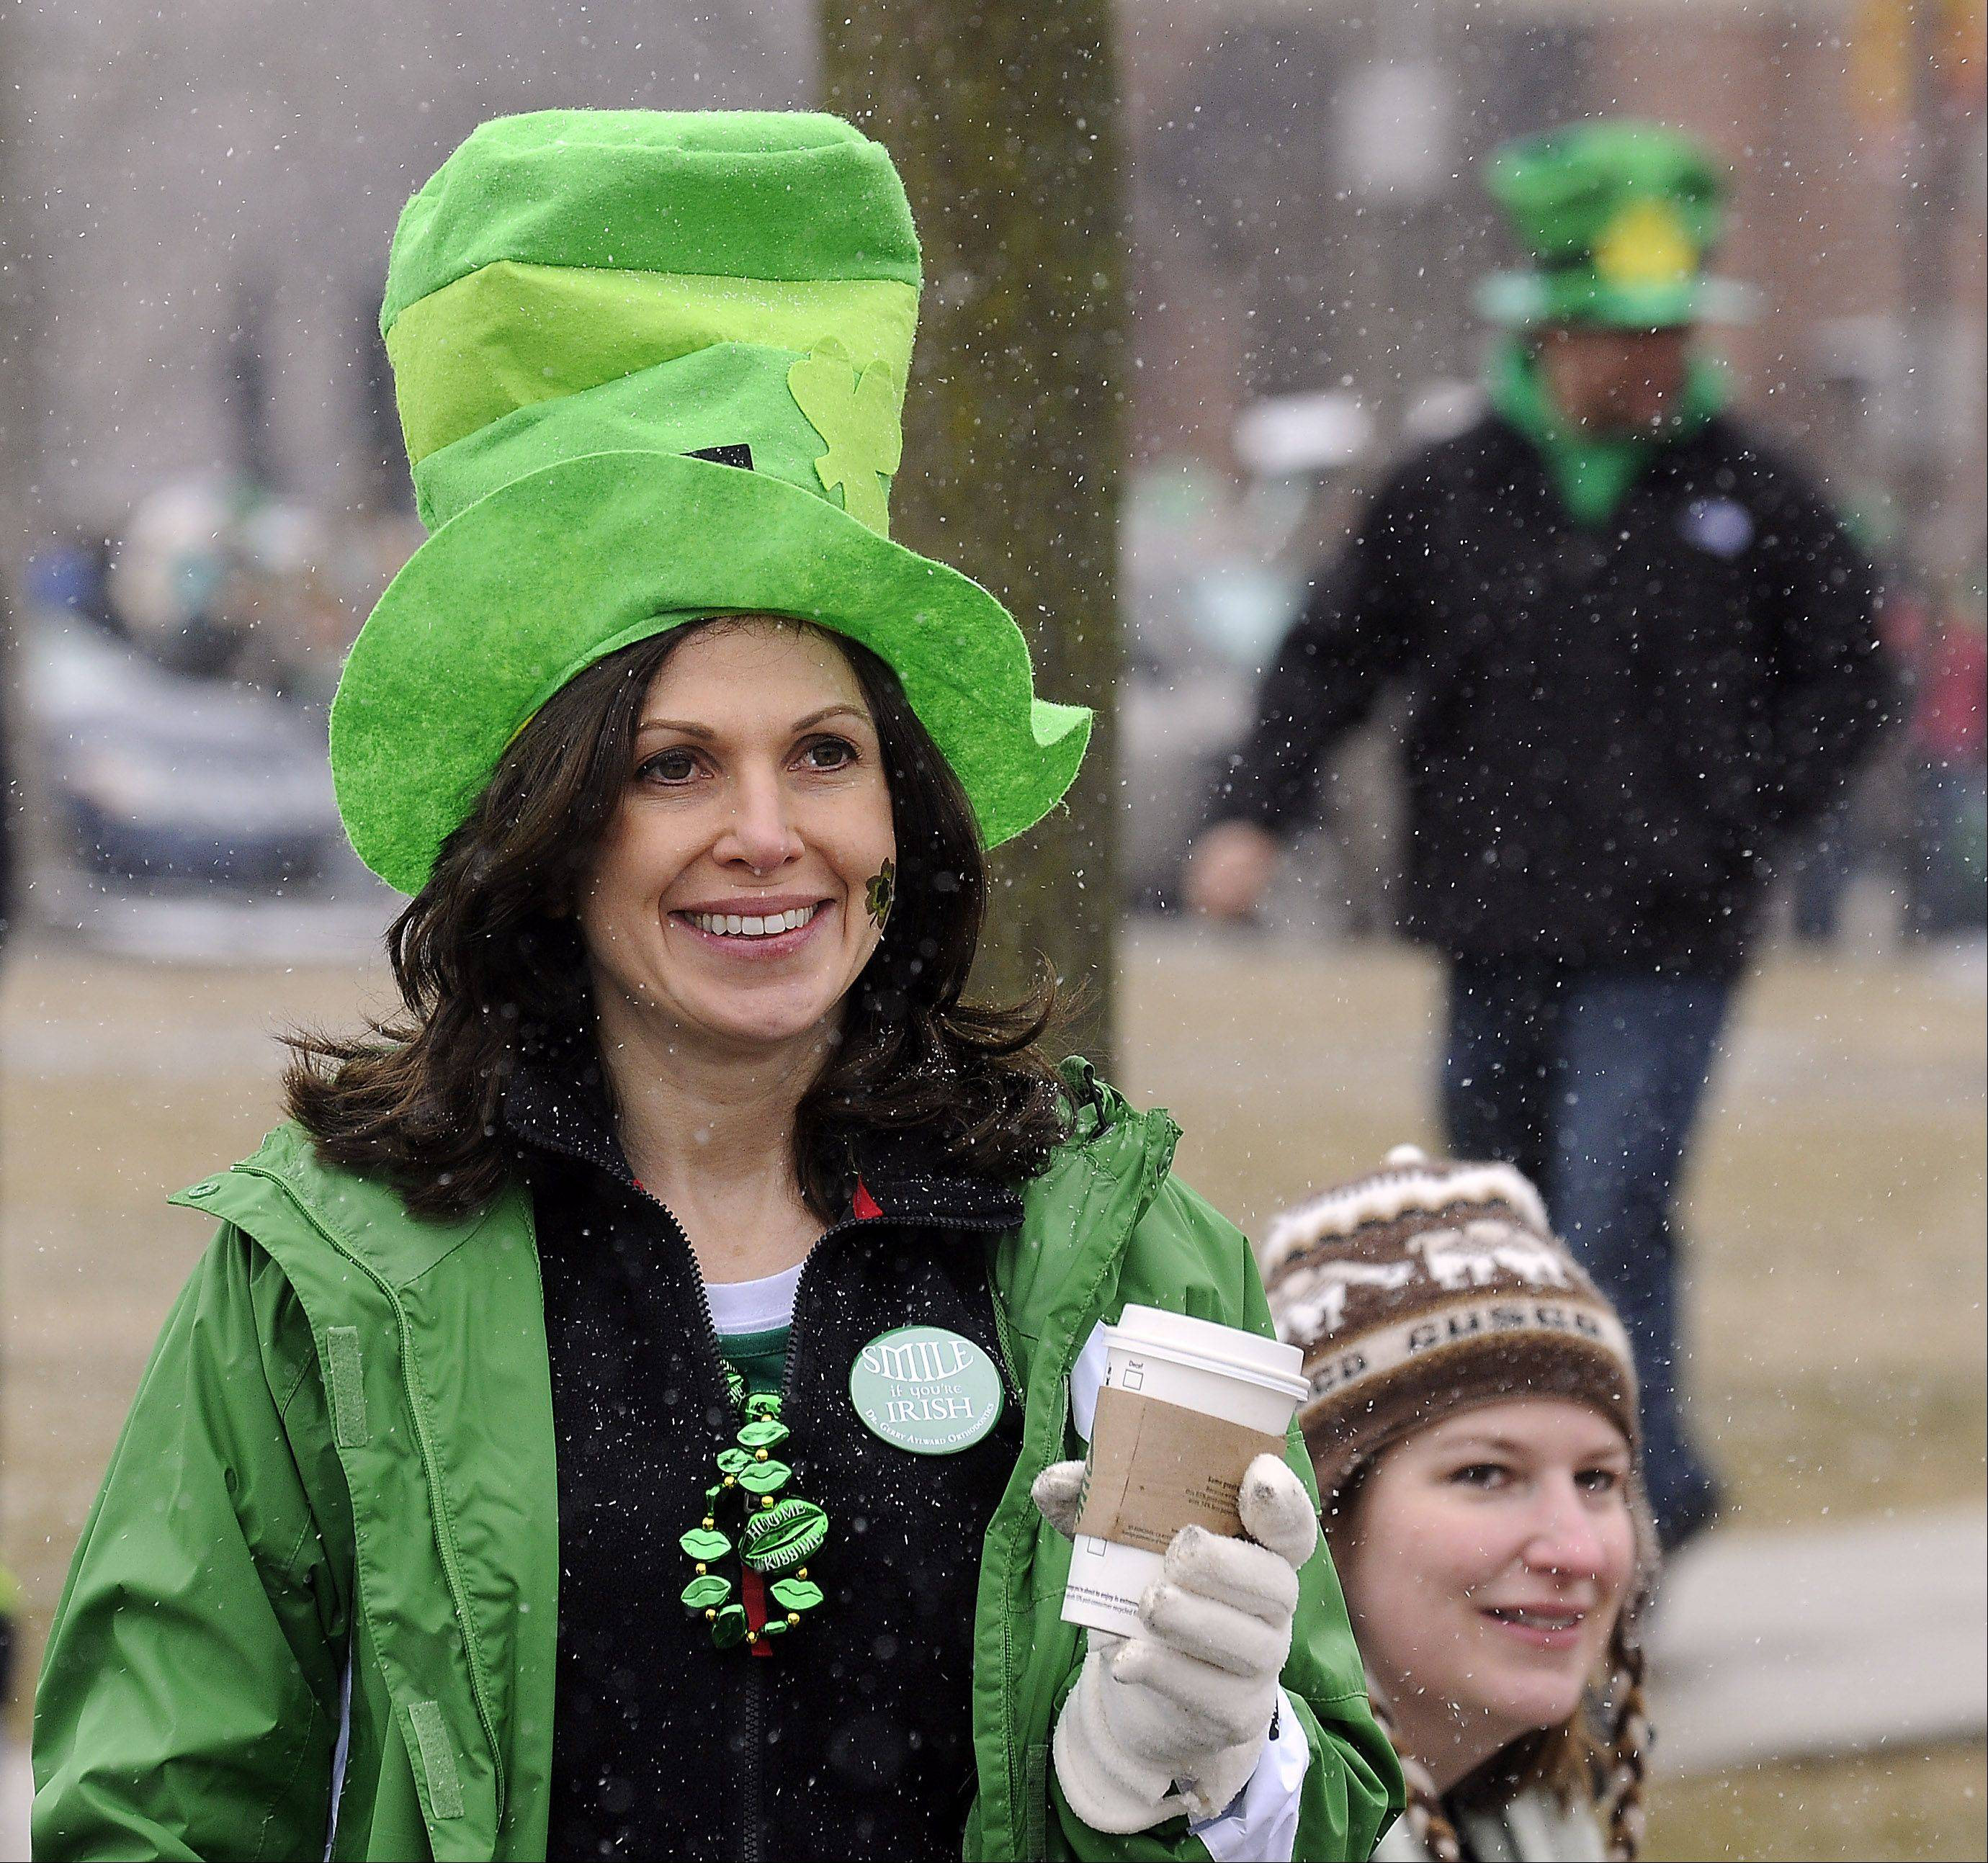 Despite the cold and the snow showers Saturday, hundreds turned out to enjoy the St. Patrick's Day parade in Palatine, including Traci King of Inverness.